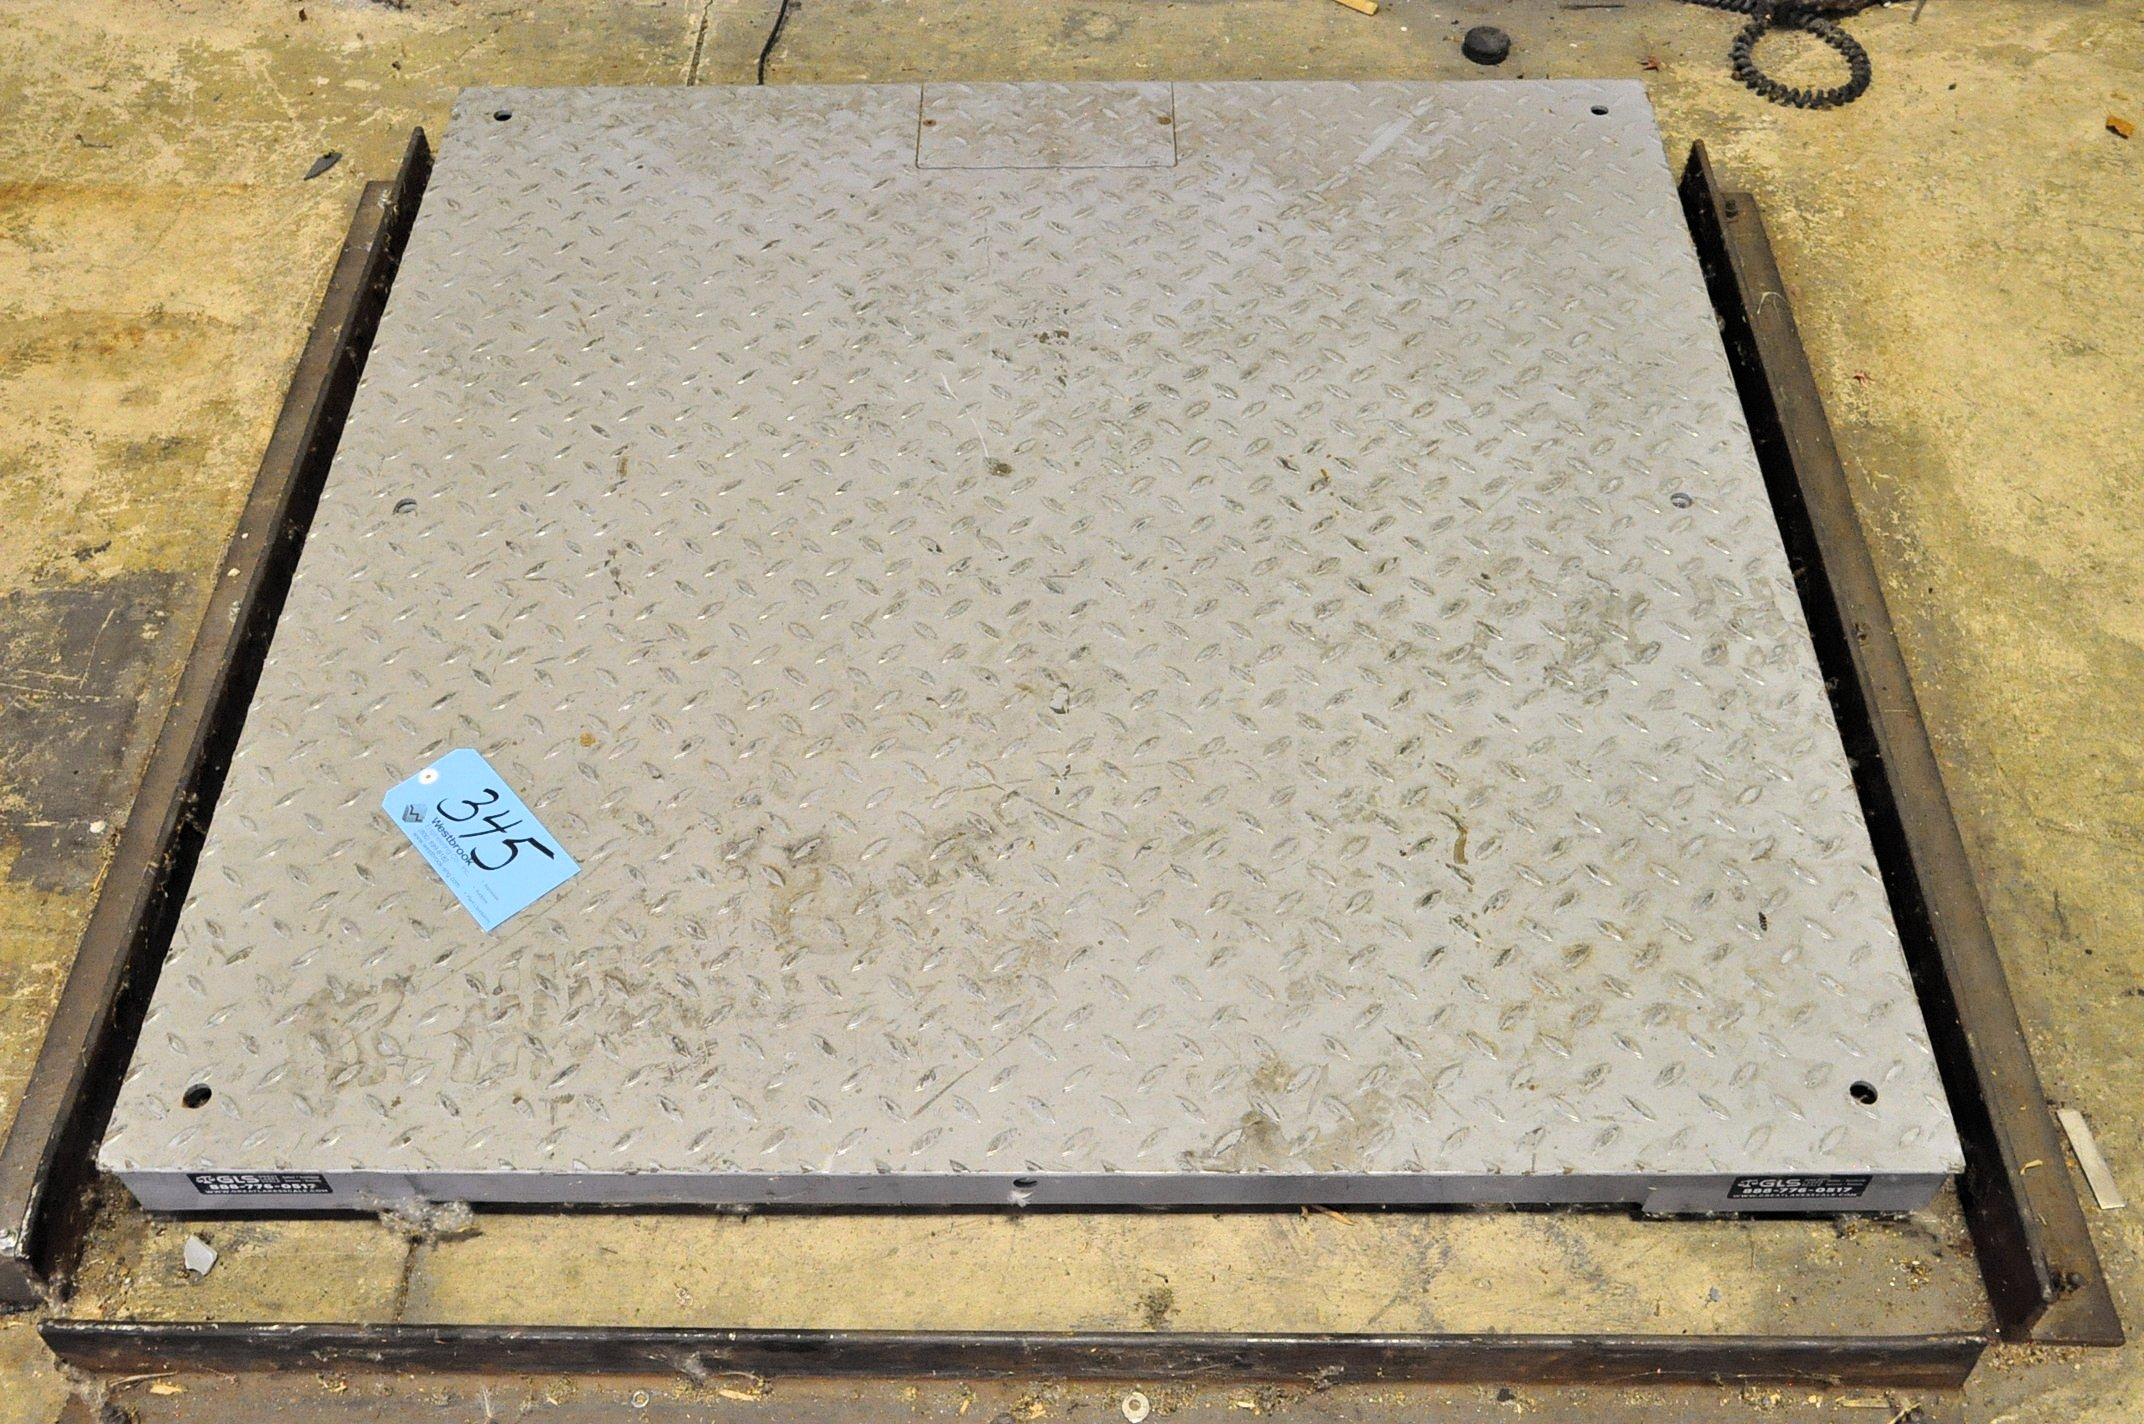 "Brecknell 48"" x 48"" Floor Plate Scale with Brecknell 10,000-Lbs. - Image 2 of 3"